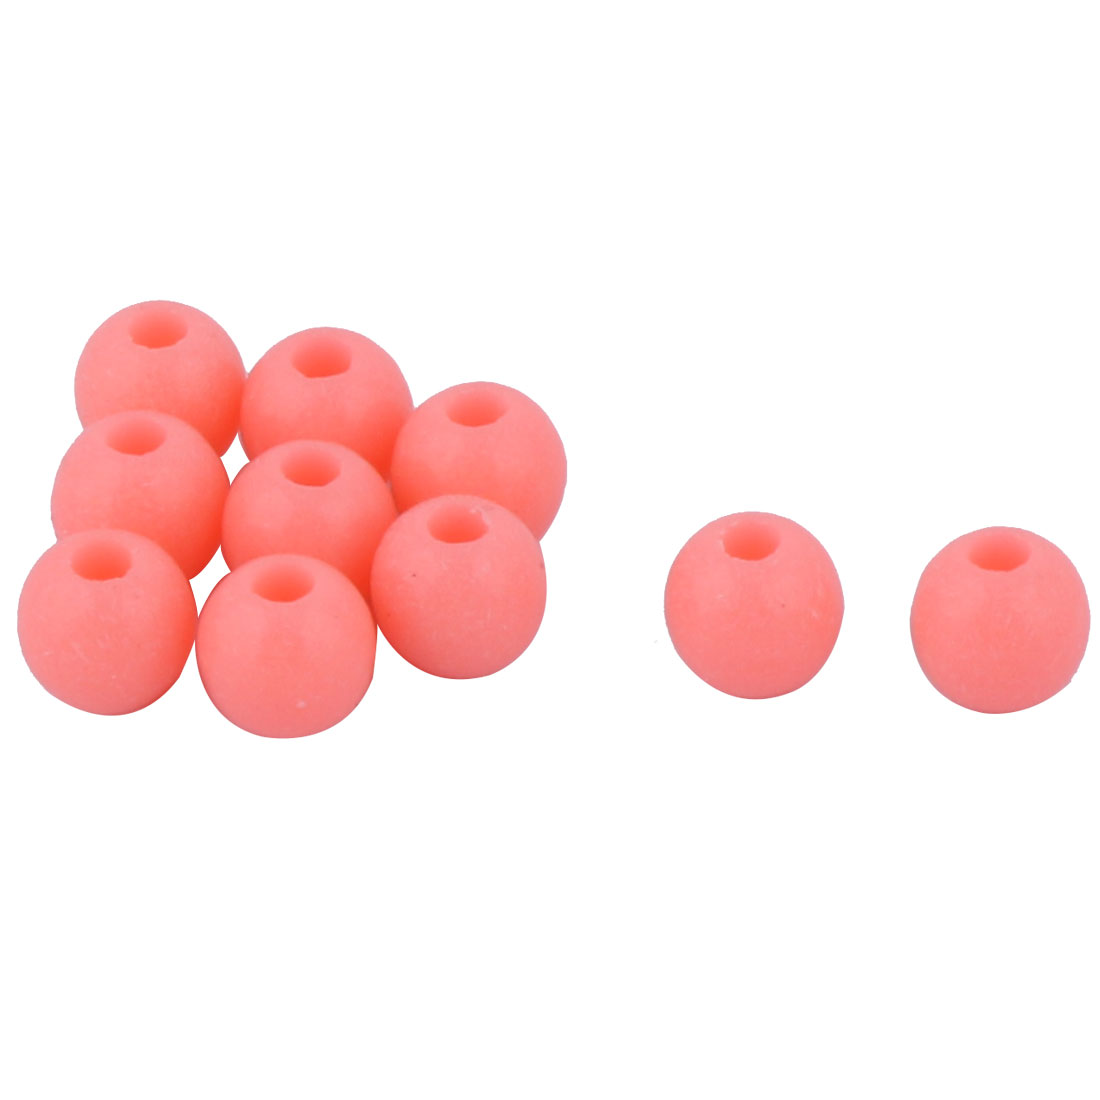 10 Pcs Salmon Hard Plastic Luminous Round Shaped Beads Fishing Lures